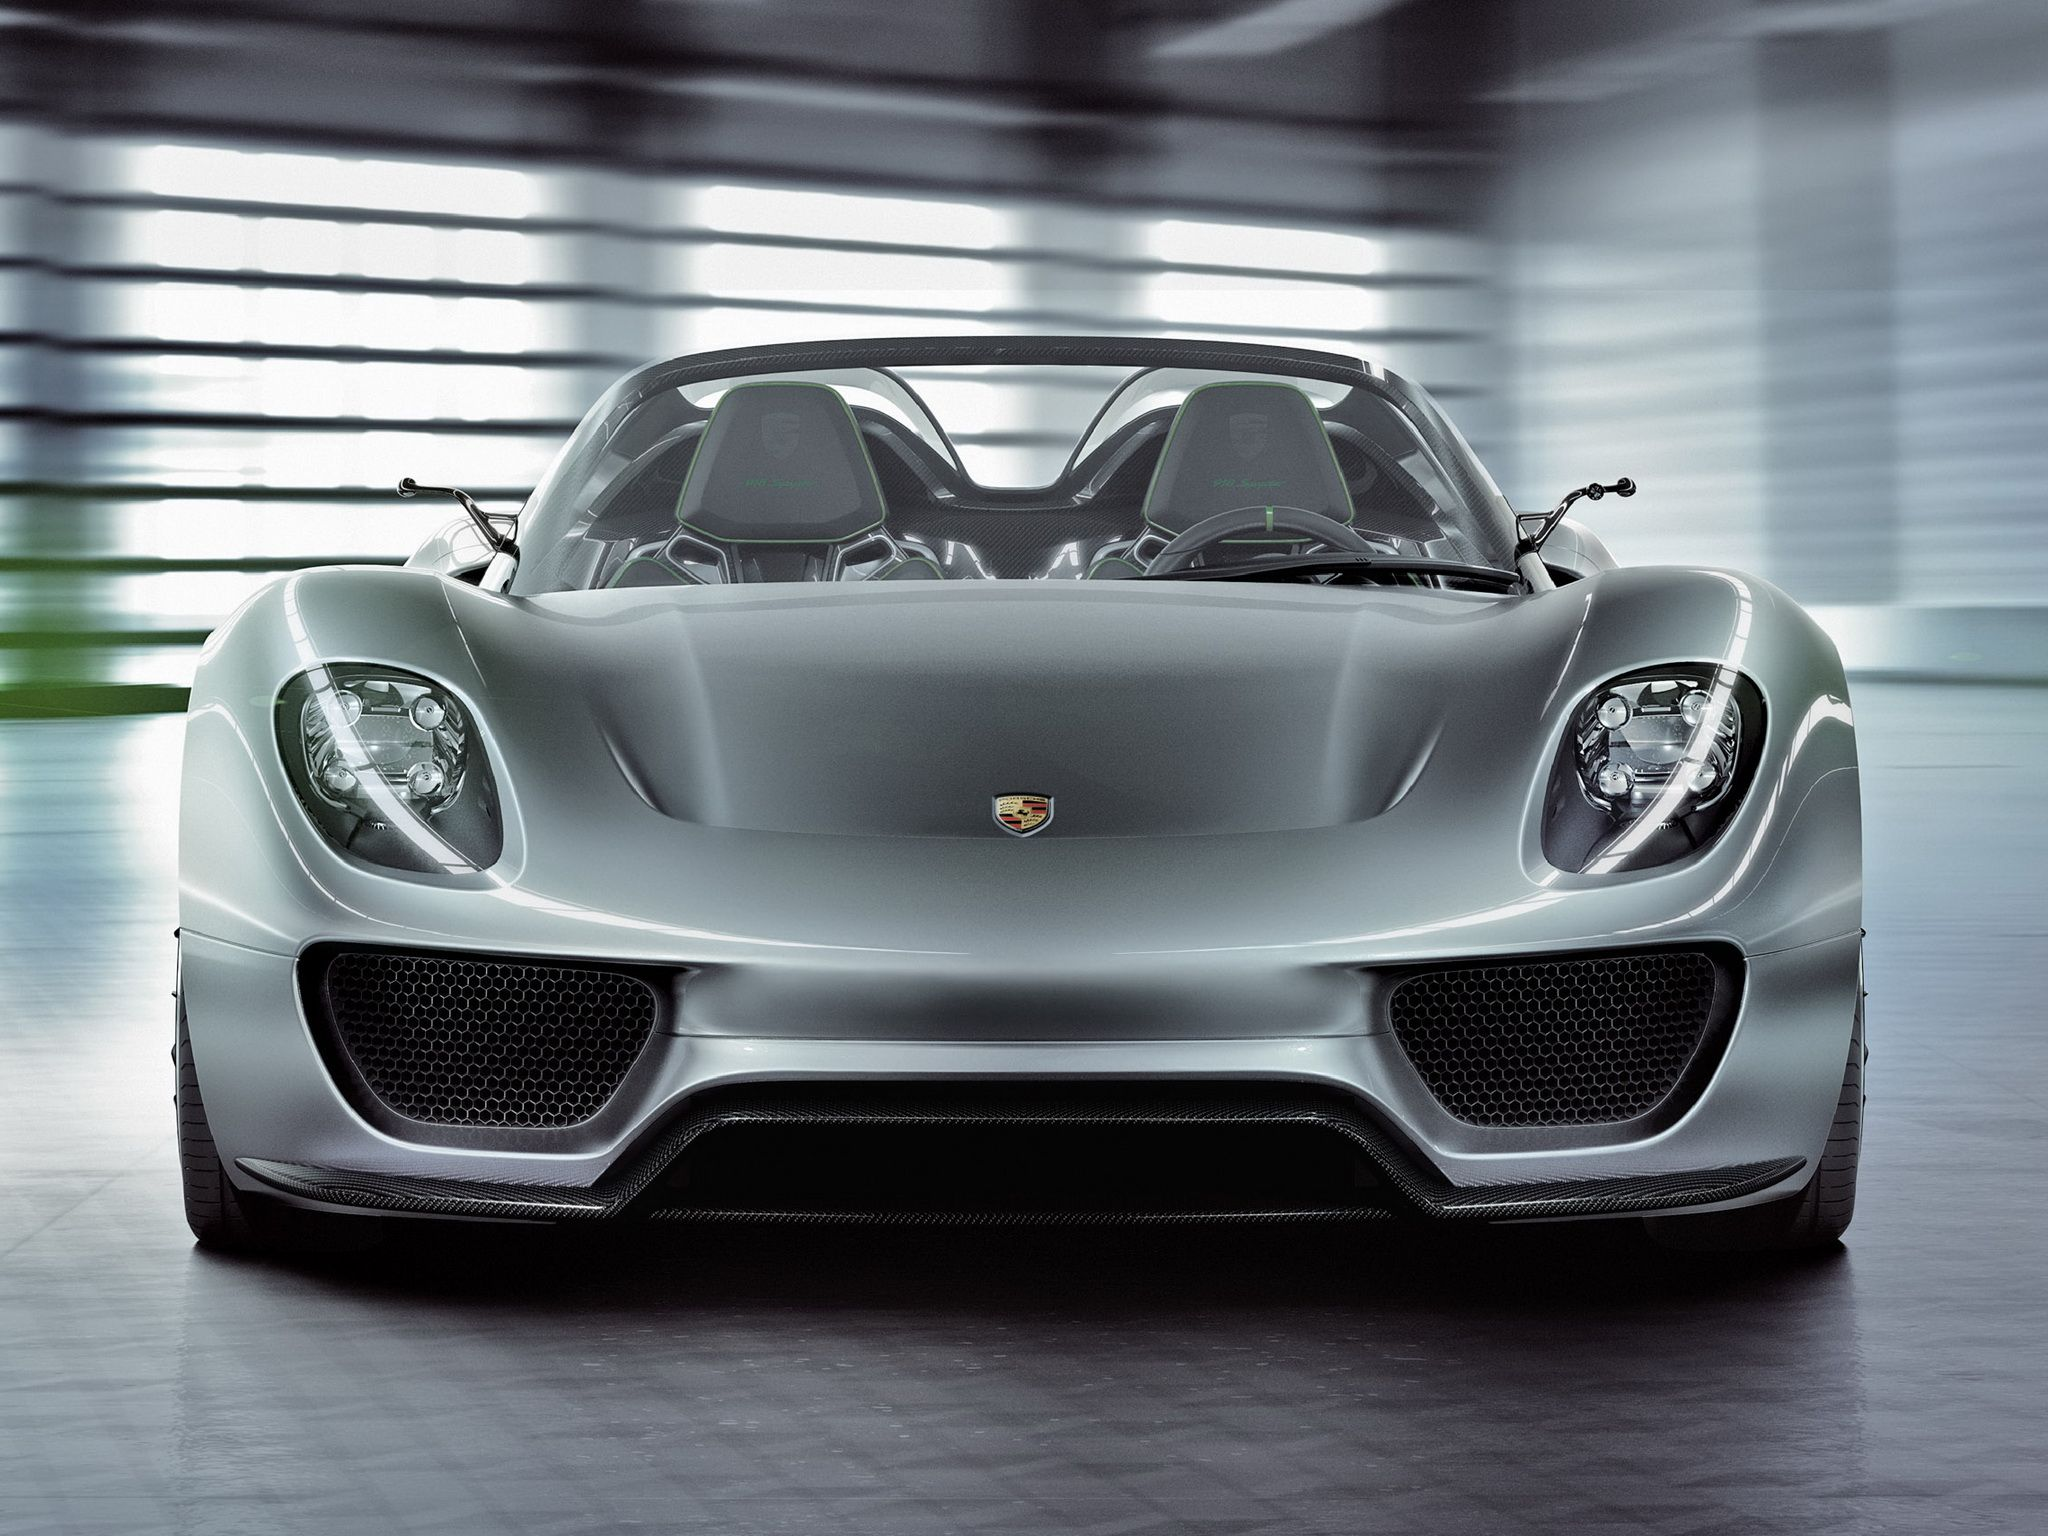 96f43db989273afa8dd89296fc3d26ce Breathtaking Price Of Porsche 918 Spyder Concept In Real Racing 3 Cars Trend